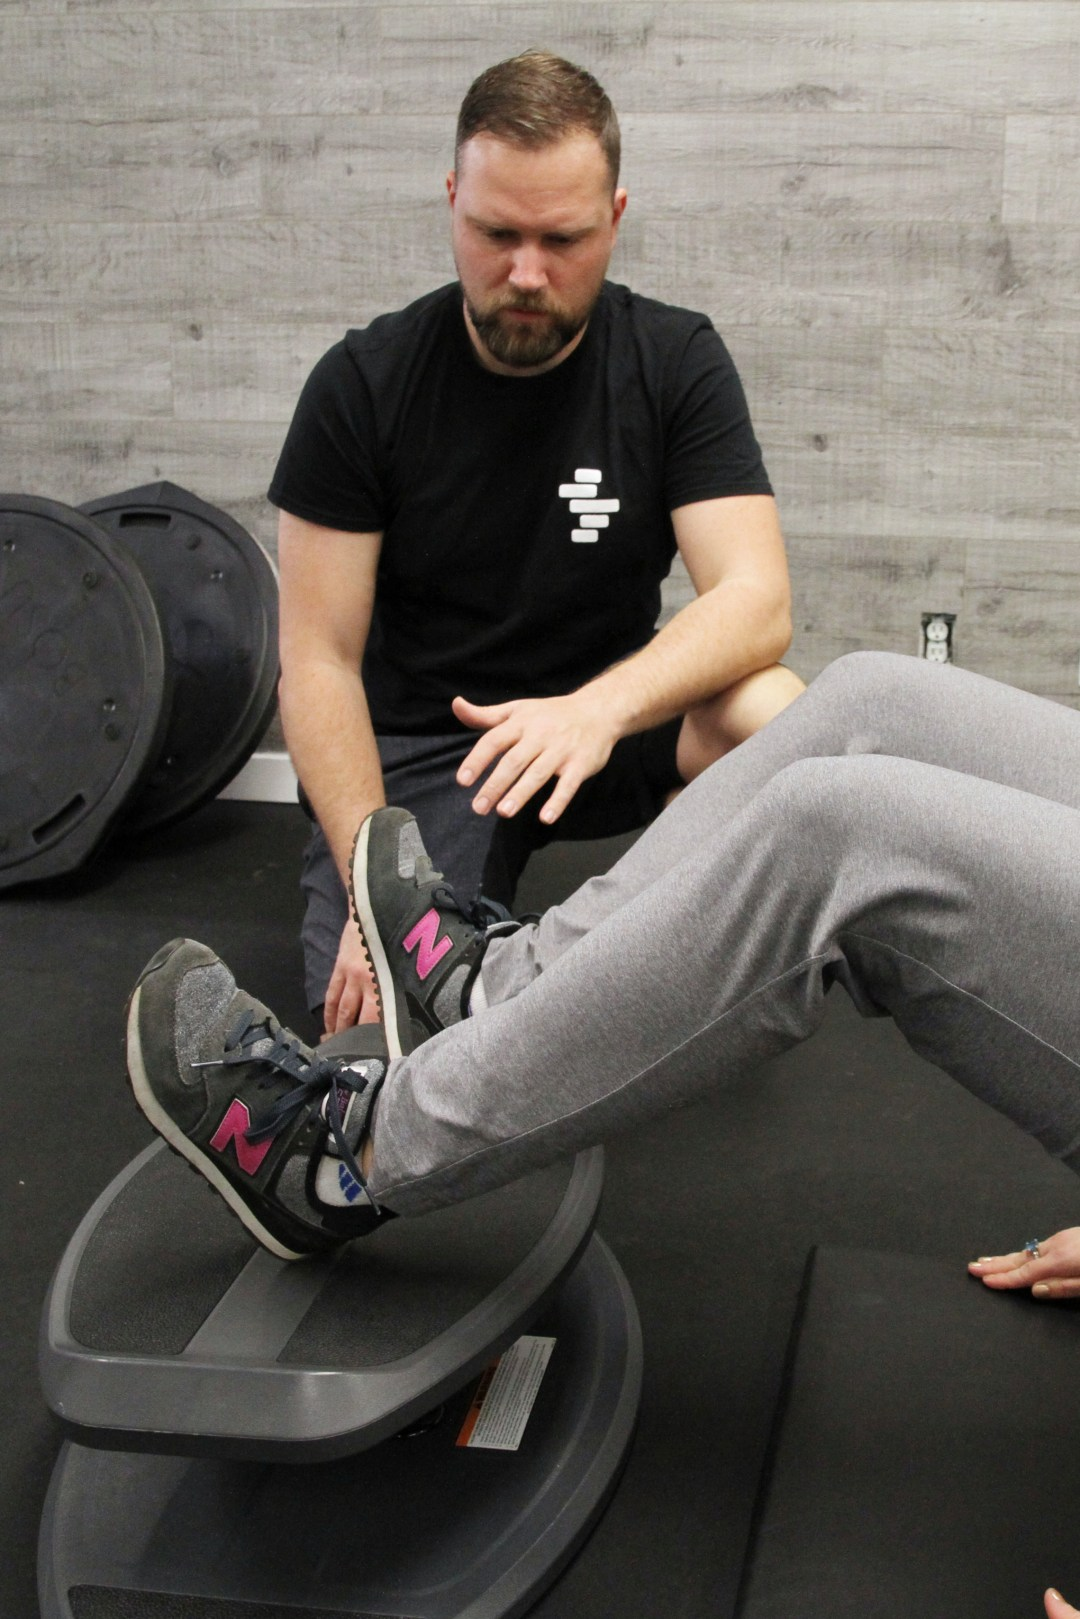 kinesiologist doing active rehab for icbc injuries